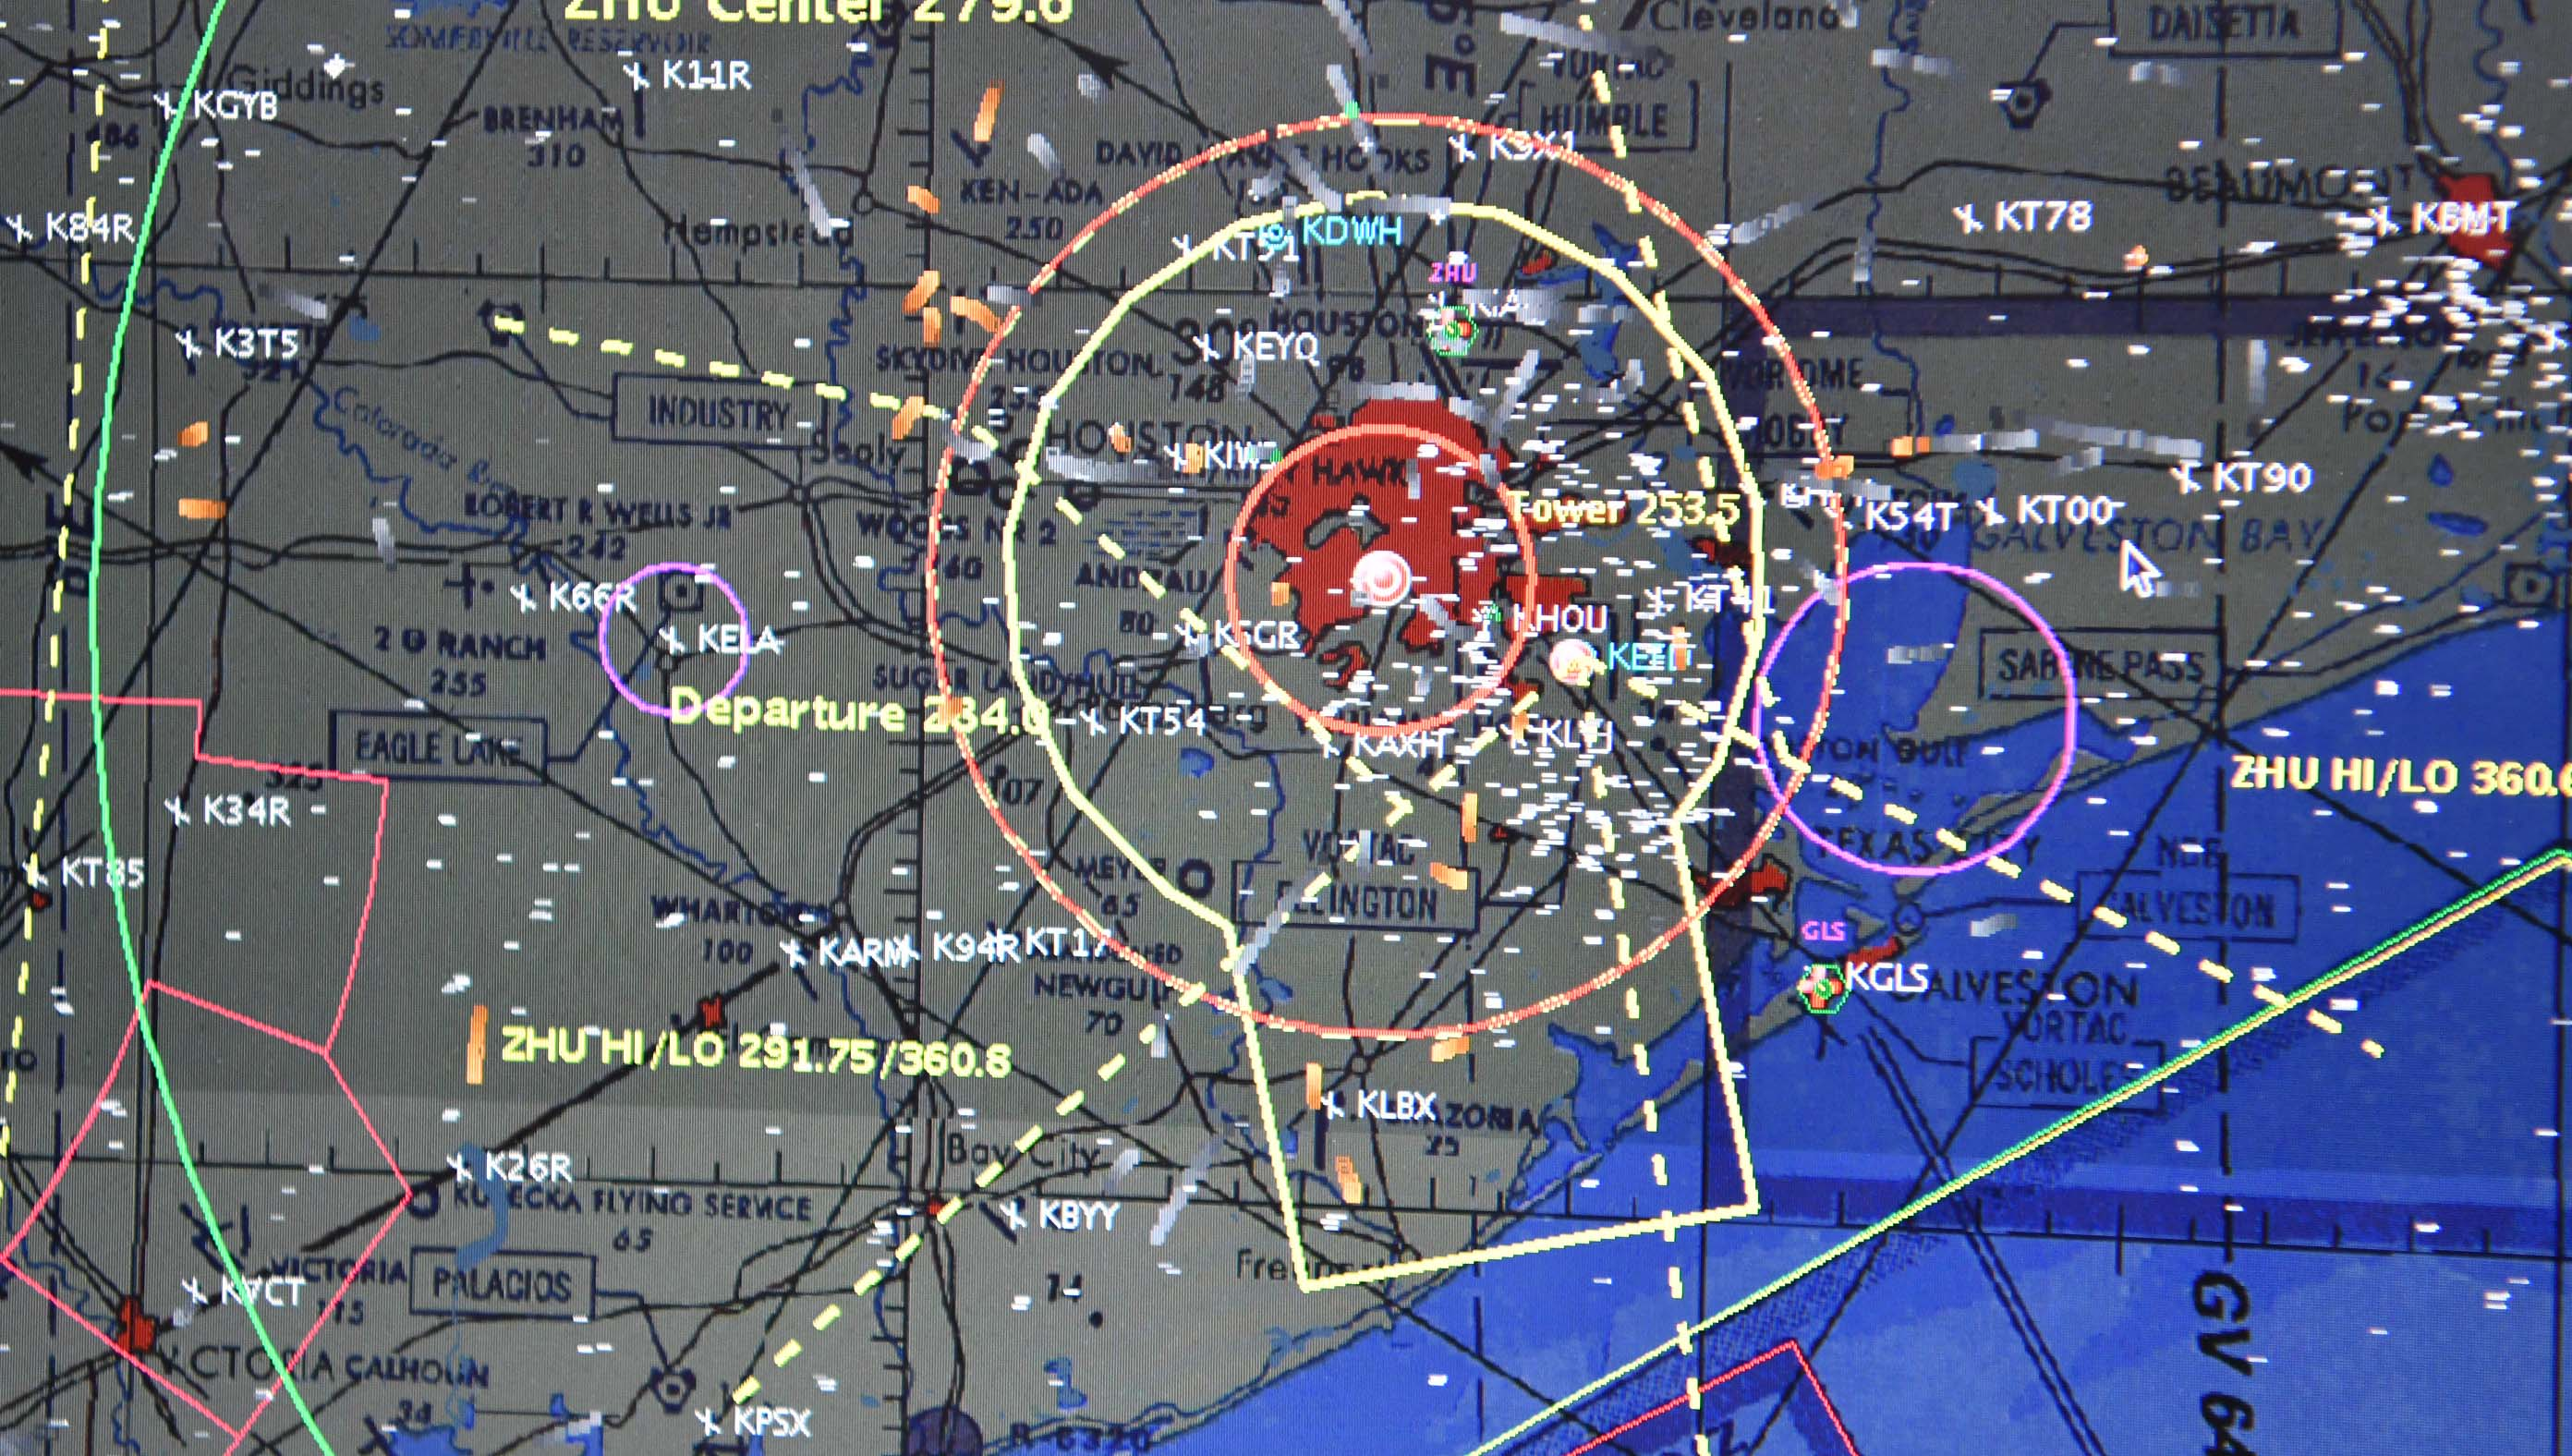 WADS keeps airspace secure during Super Bowl LI